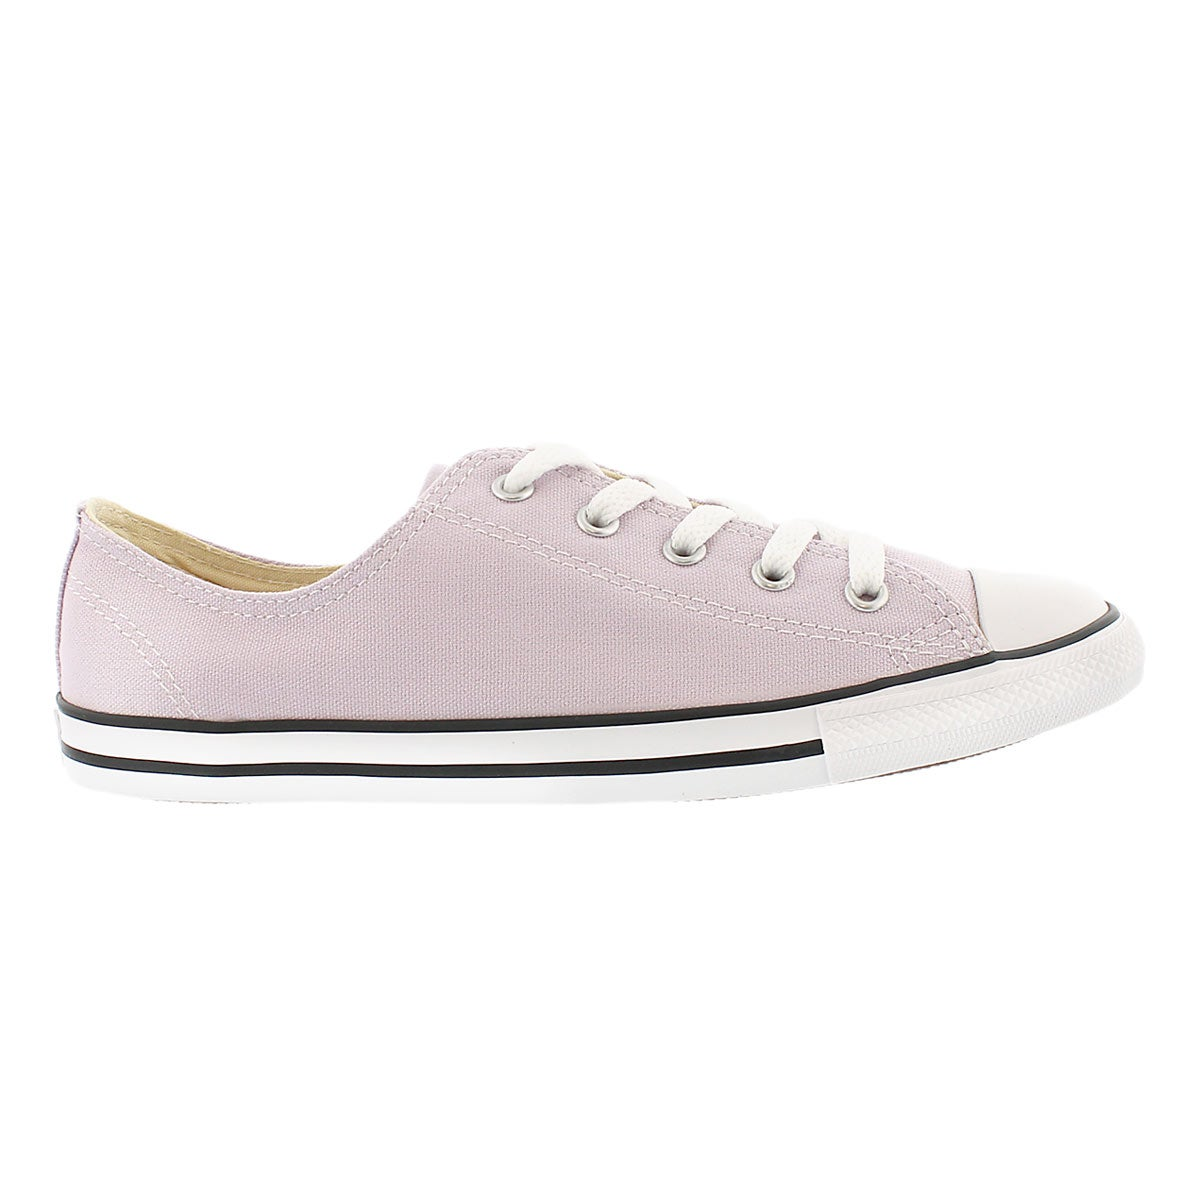 Lds CT AllStar Dainty Canvas purp oxford